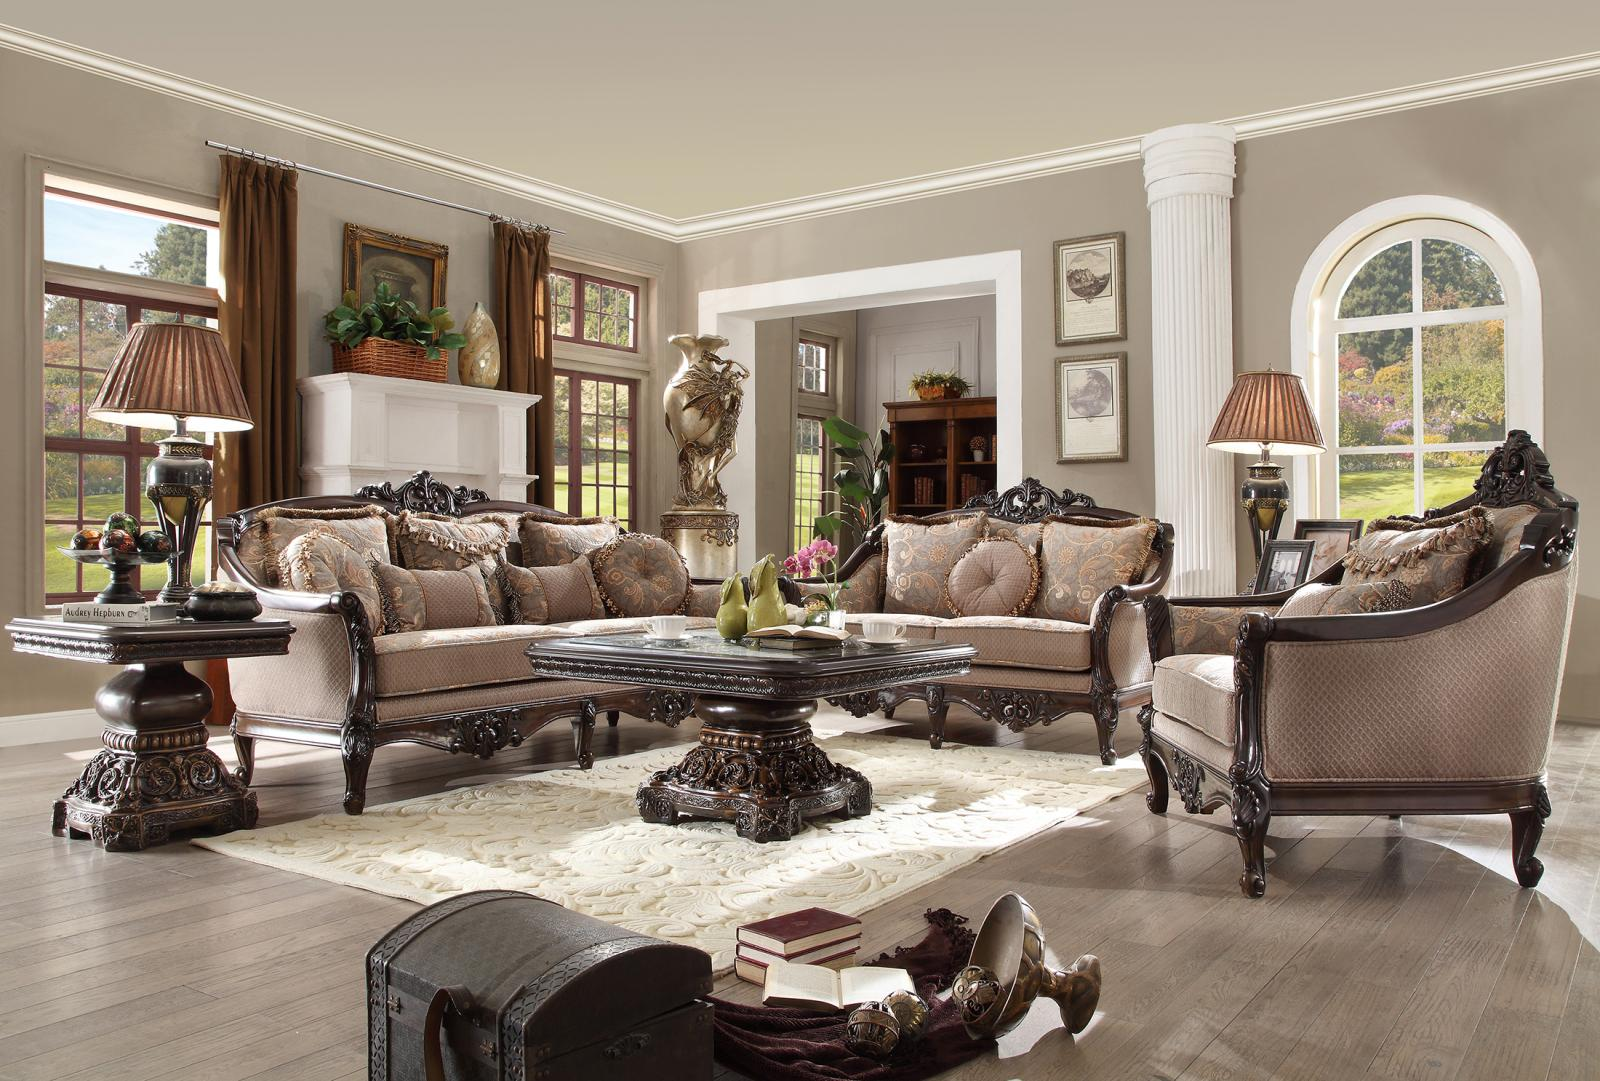 Traditional Luxury Hd-09 Sofa Loveseat and Chair Set 3Pcs by Homey Design